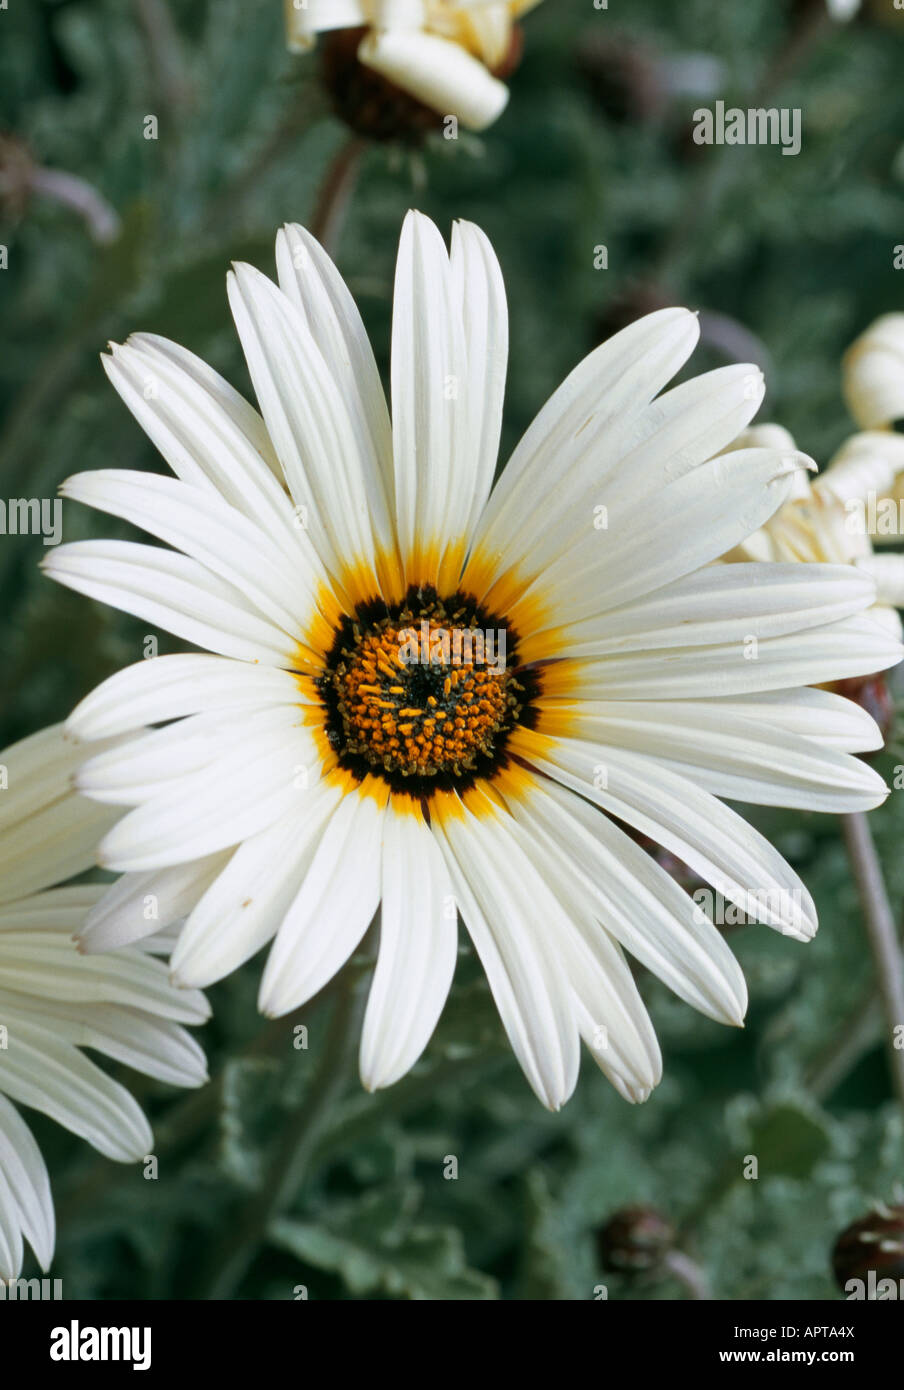 Gazania white corolla with centered rings of golden yellow to black and amber - Stock Image